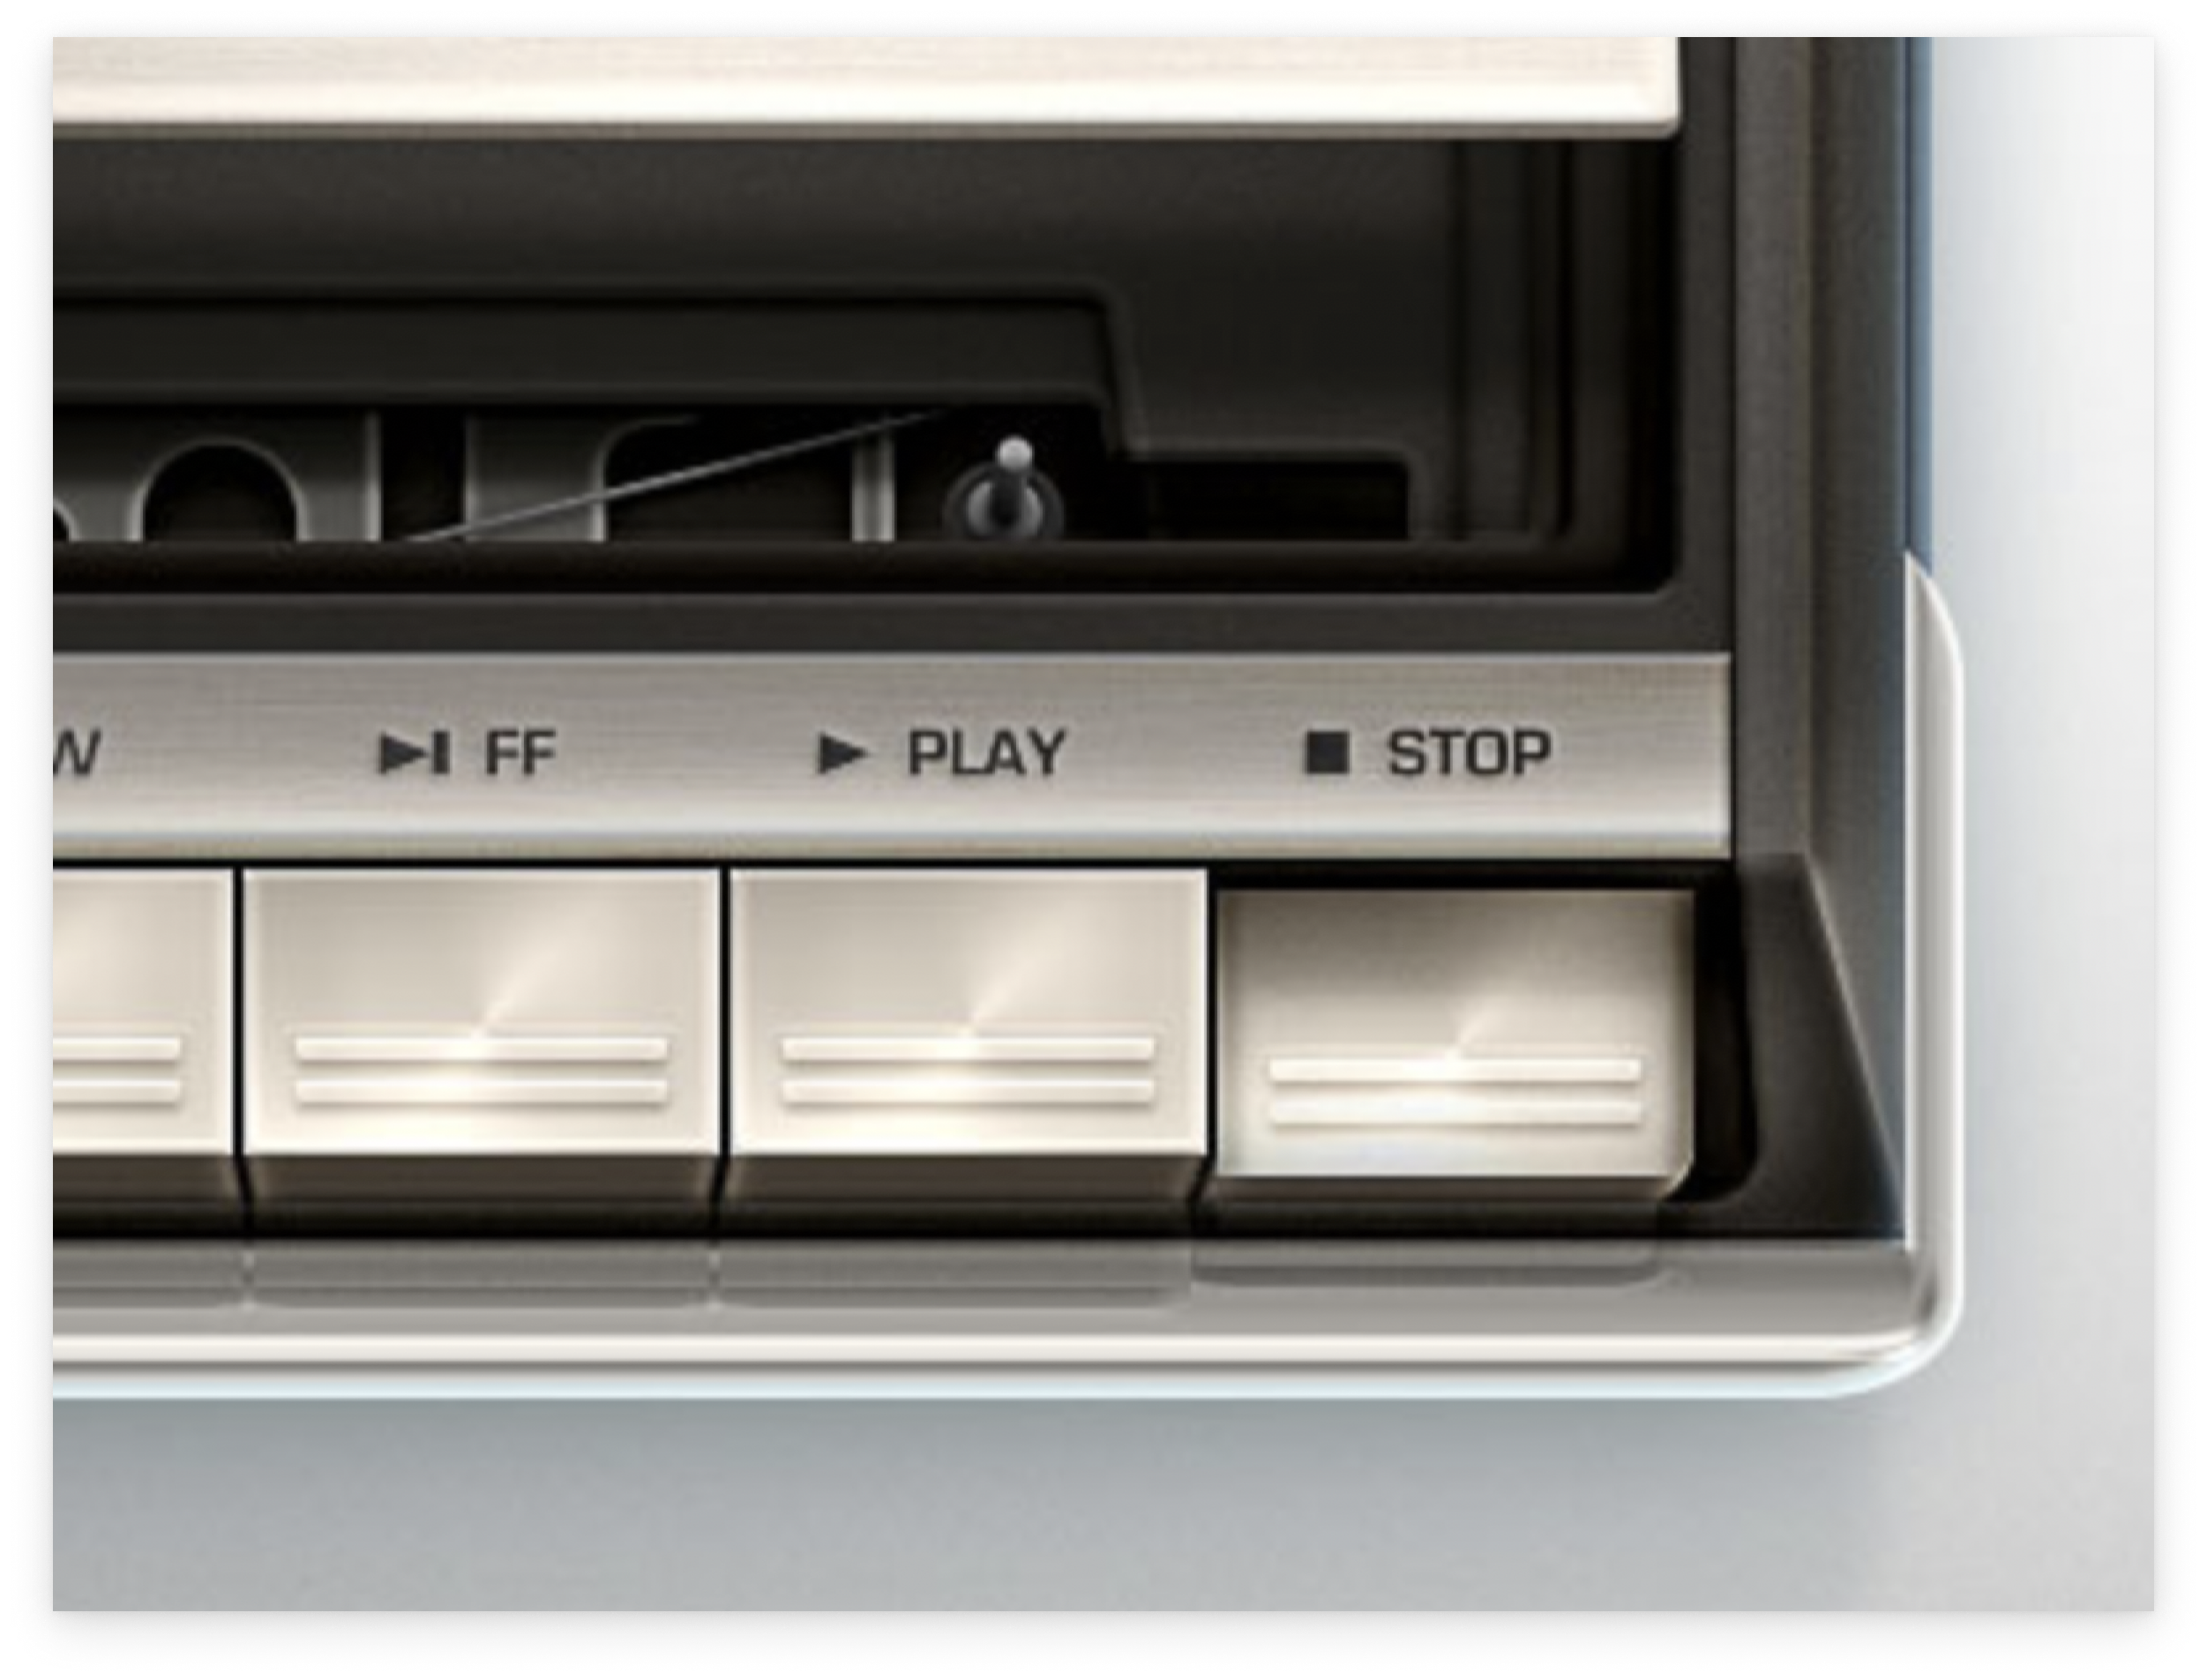 A cassette tape player